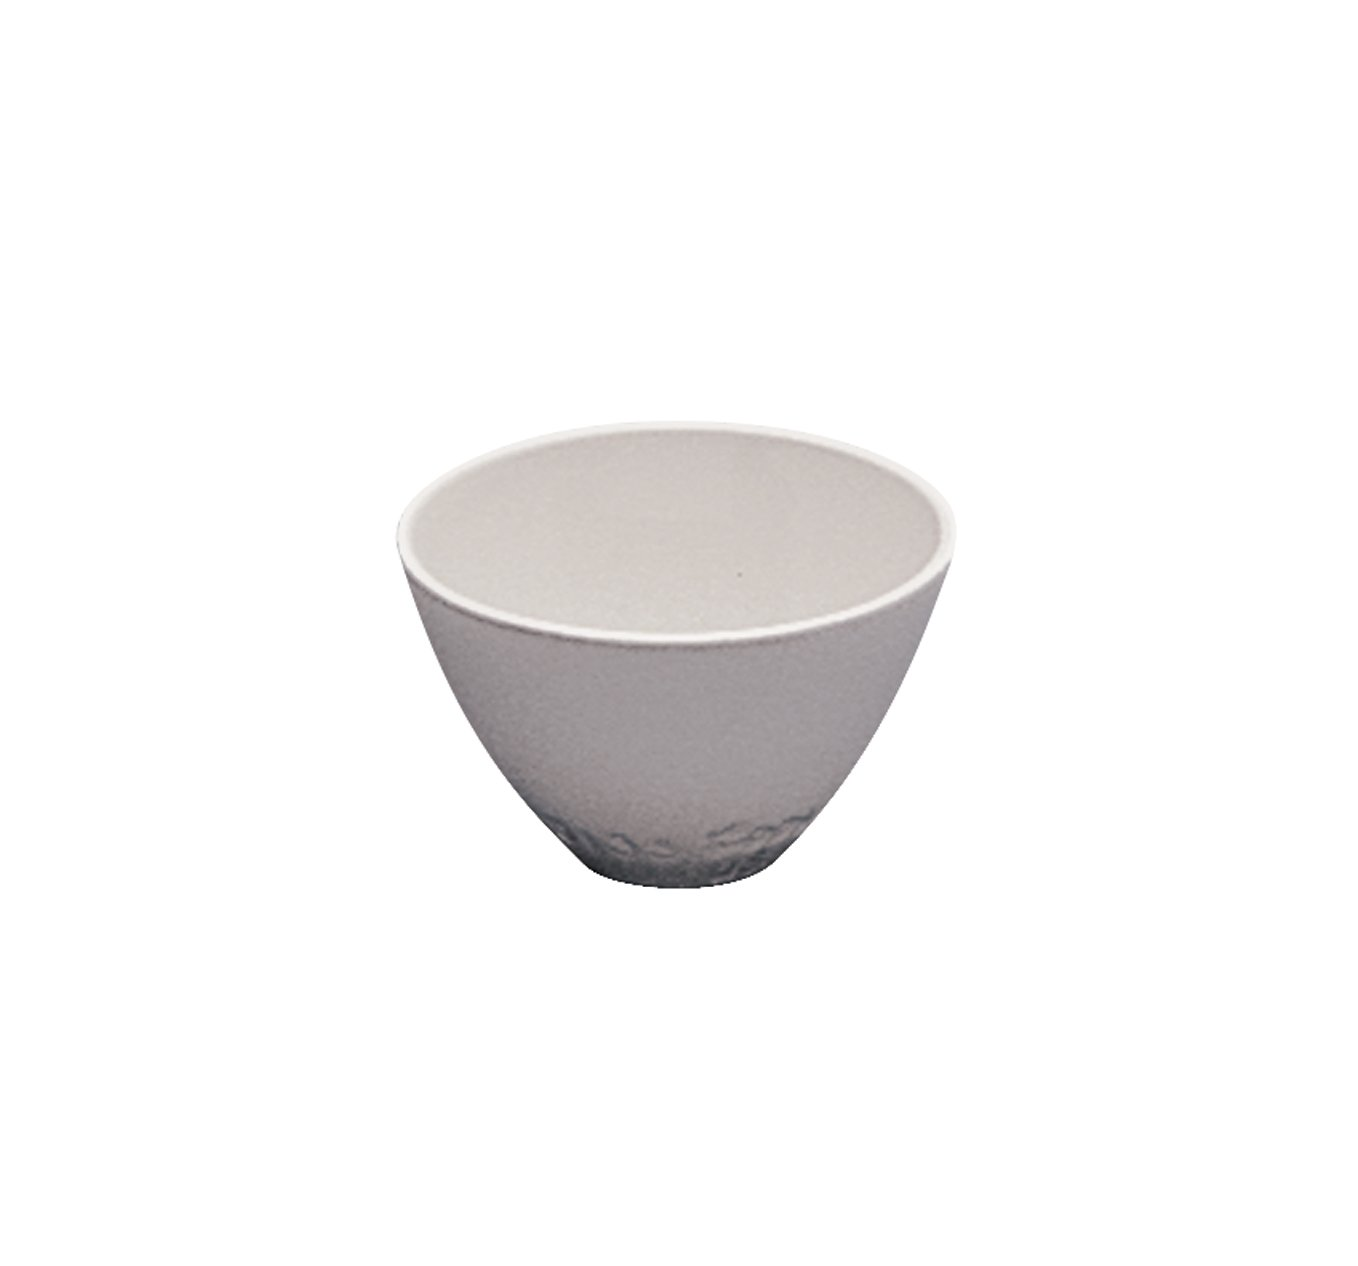 CoorsTek 60133 Porcelain 8mL Wide Form Crucible, White Glazed, 32mm OD x 20 Height by CoorsTek